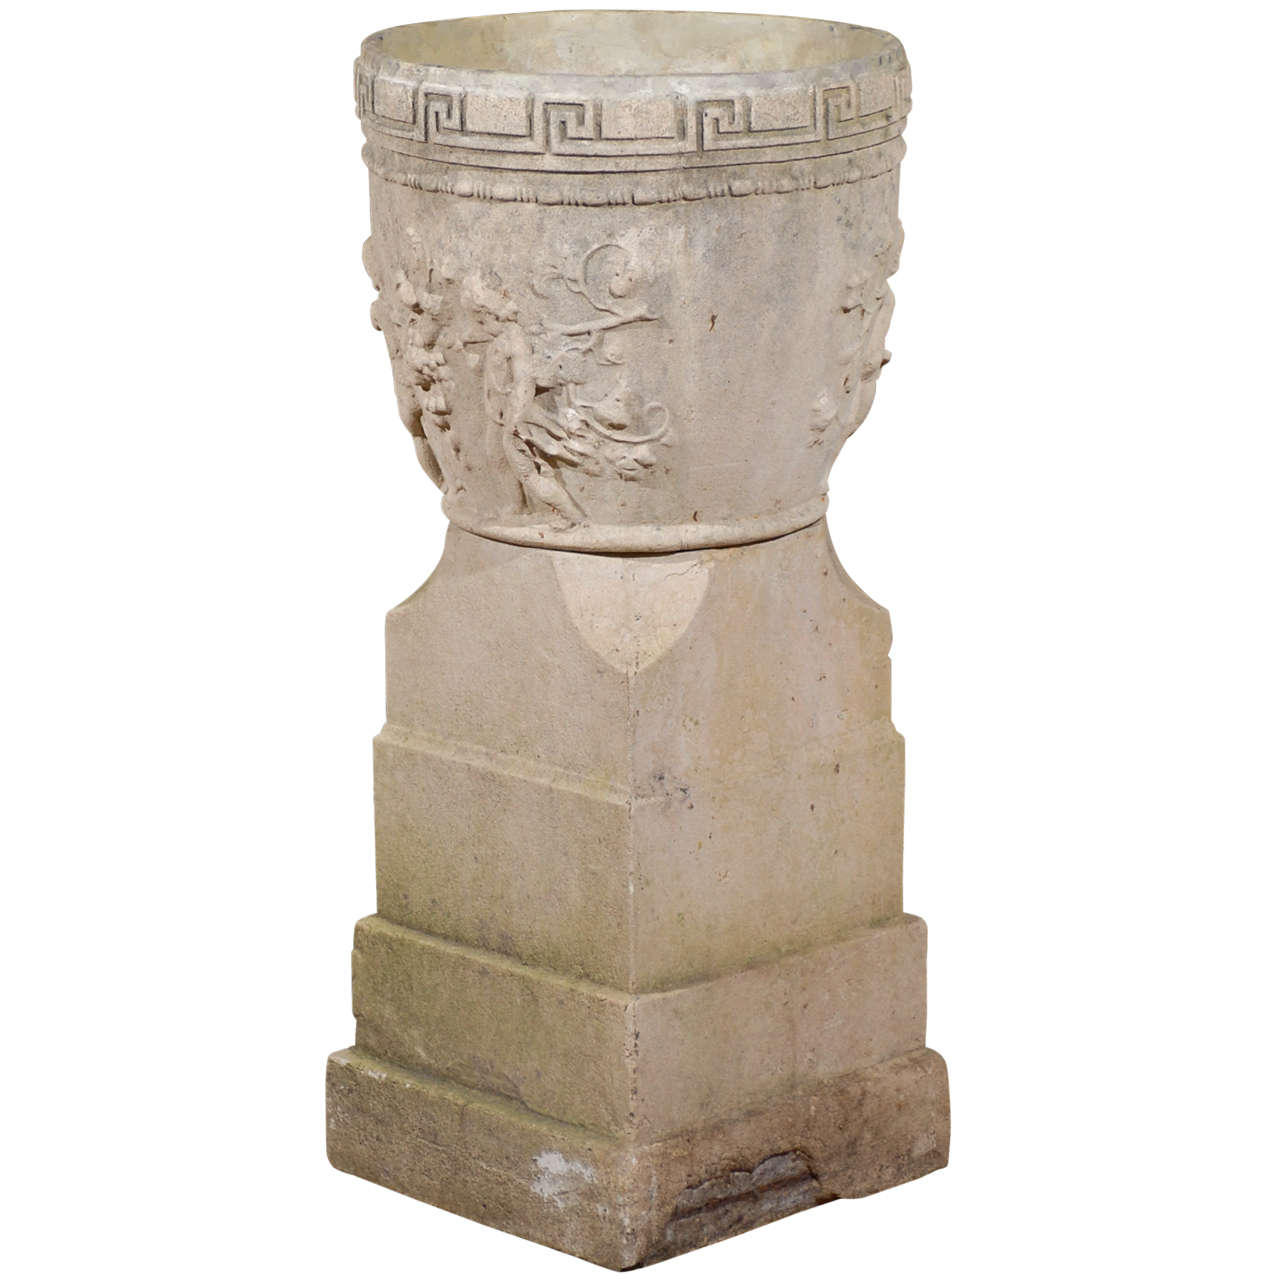 Tall English Neoclassical Style Urn on Base with Greek Key and Bacchanal Theme